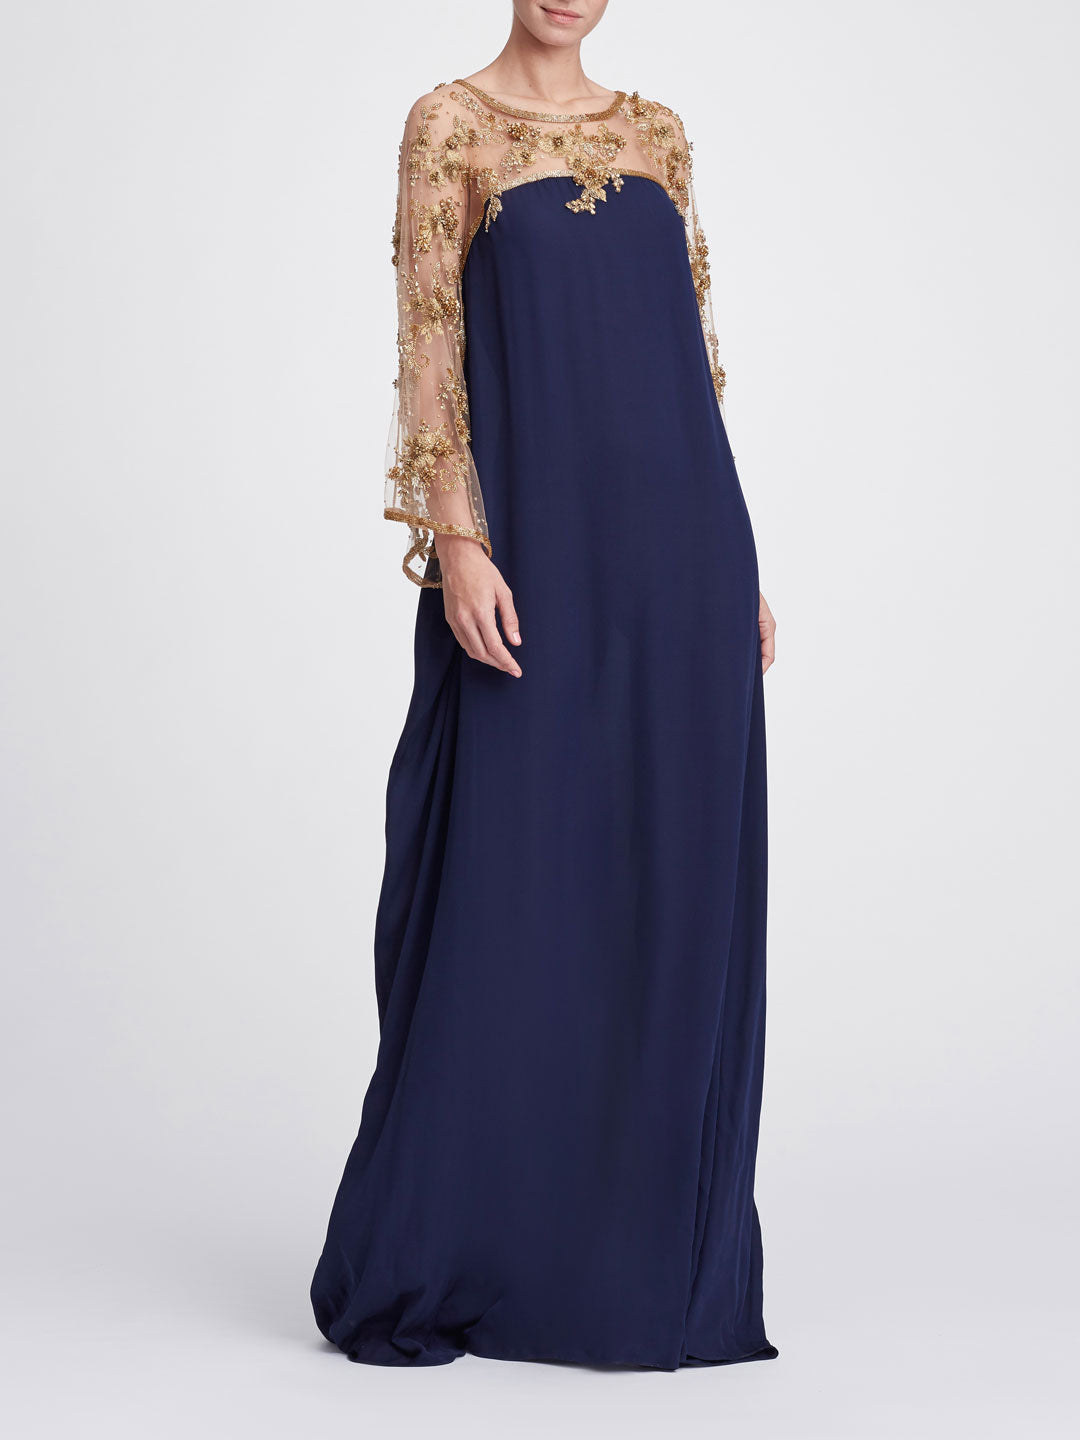 Gold metallic embroidered caftan